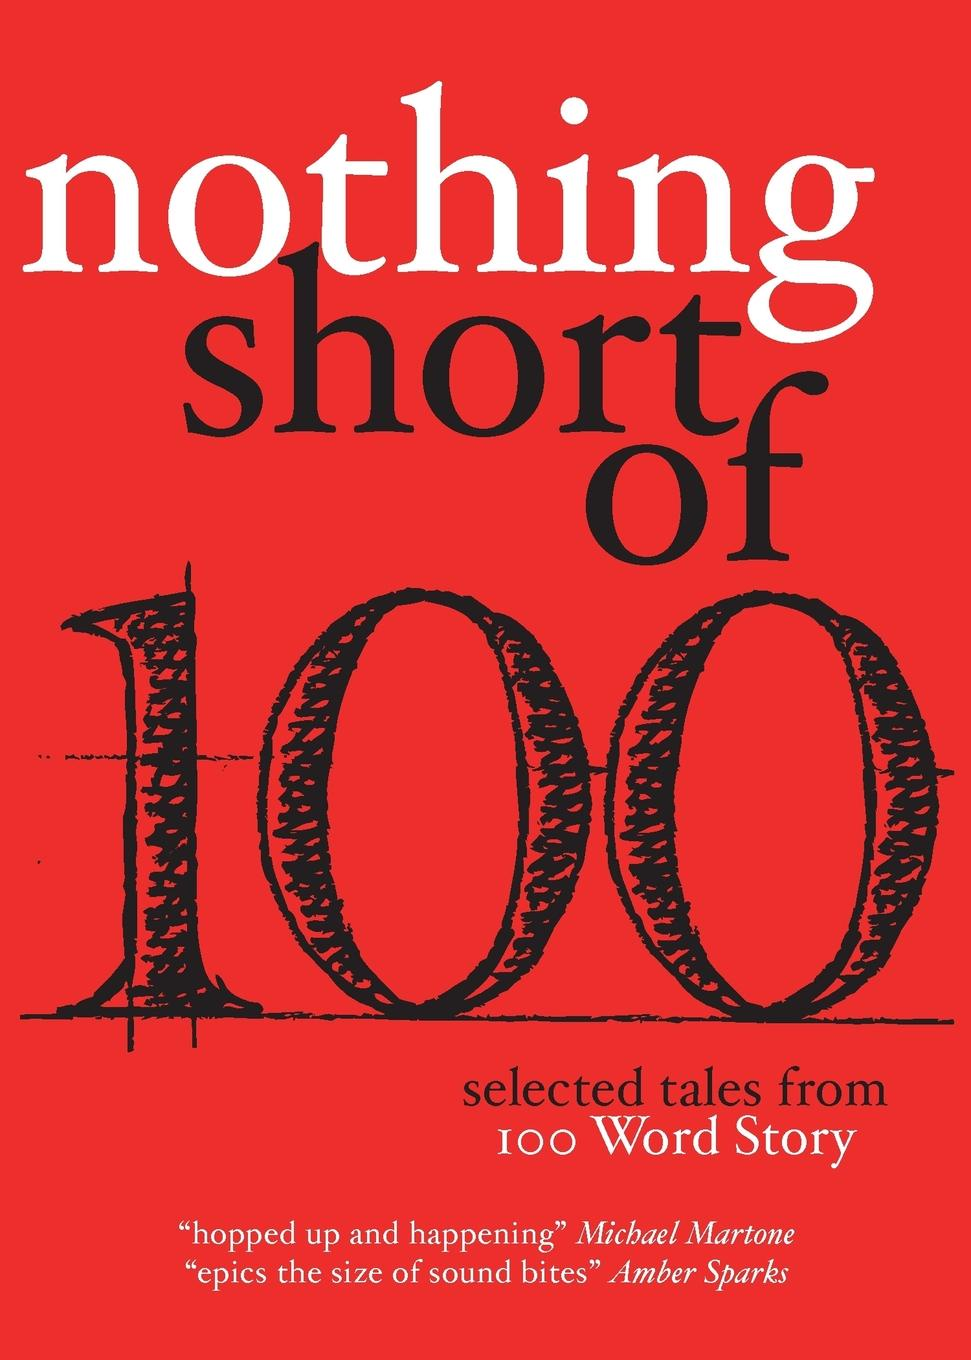 Nothing Short Of. Selected Tales from 100 Word Story.org casey watson the wild child secrets always find a way of revealing themselves sometimes you just need to know where to look a true short story